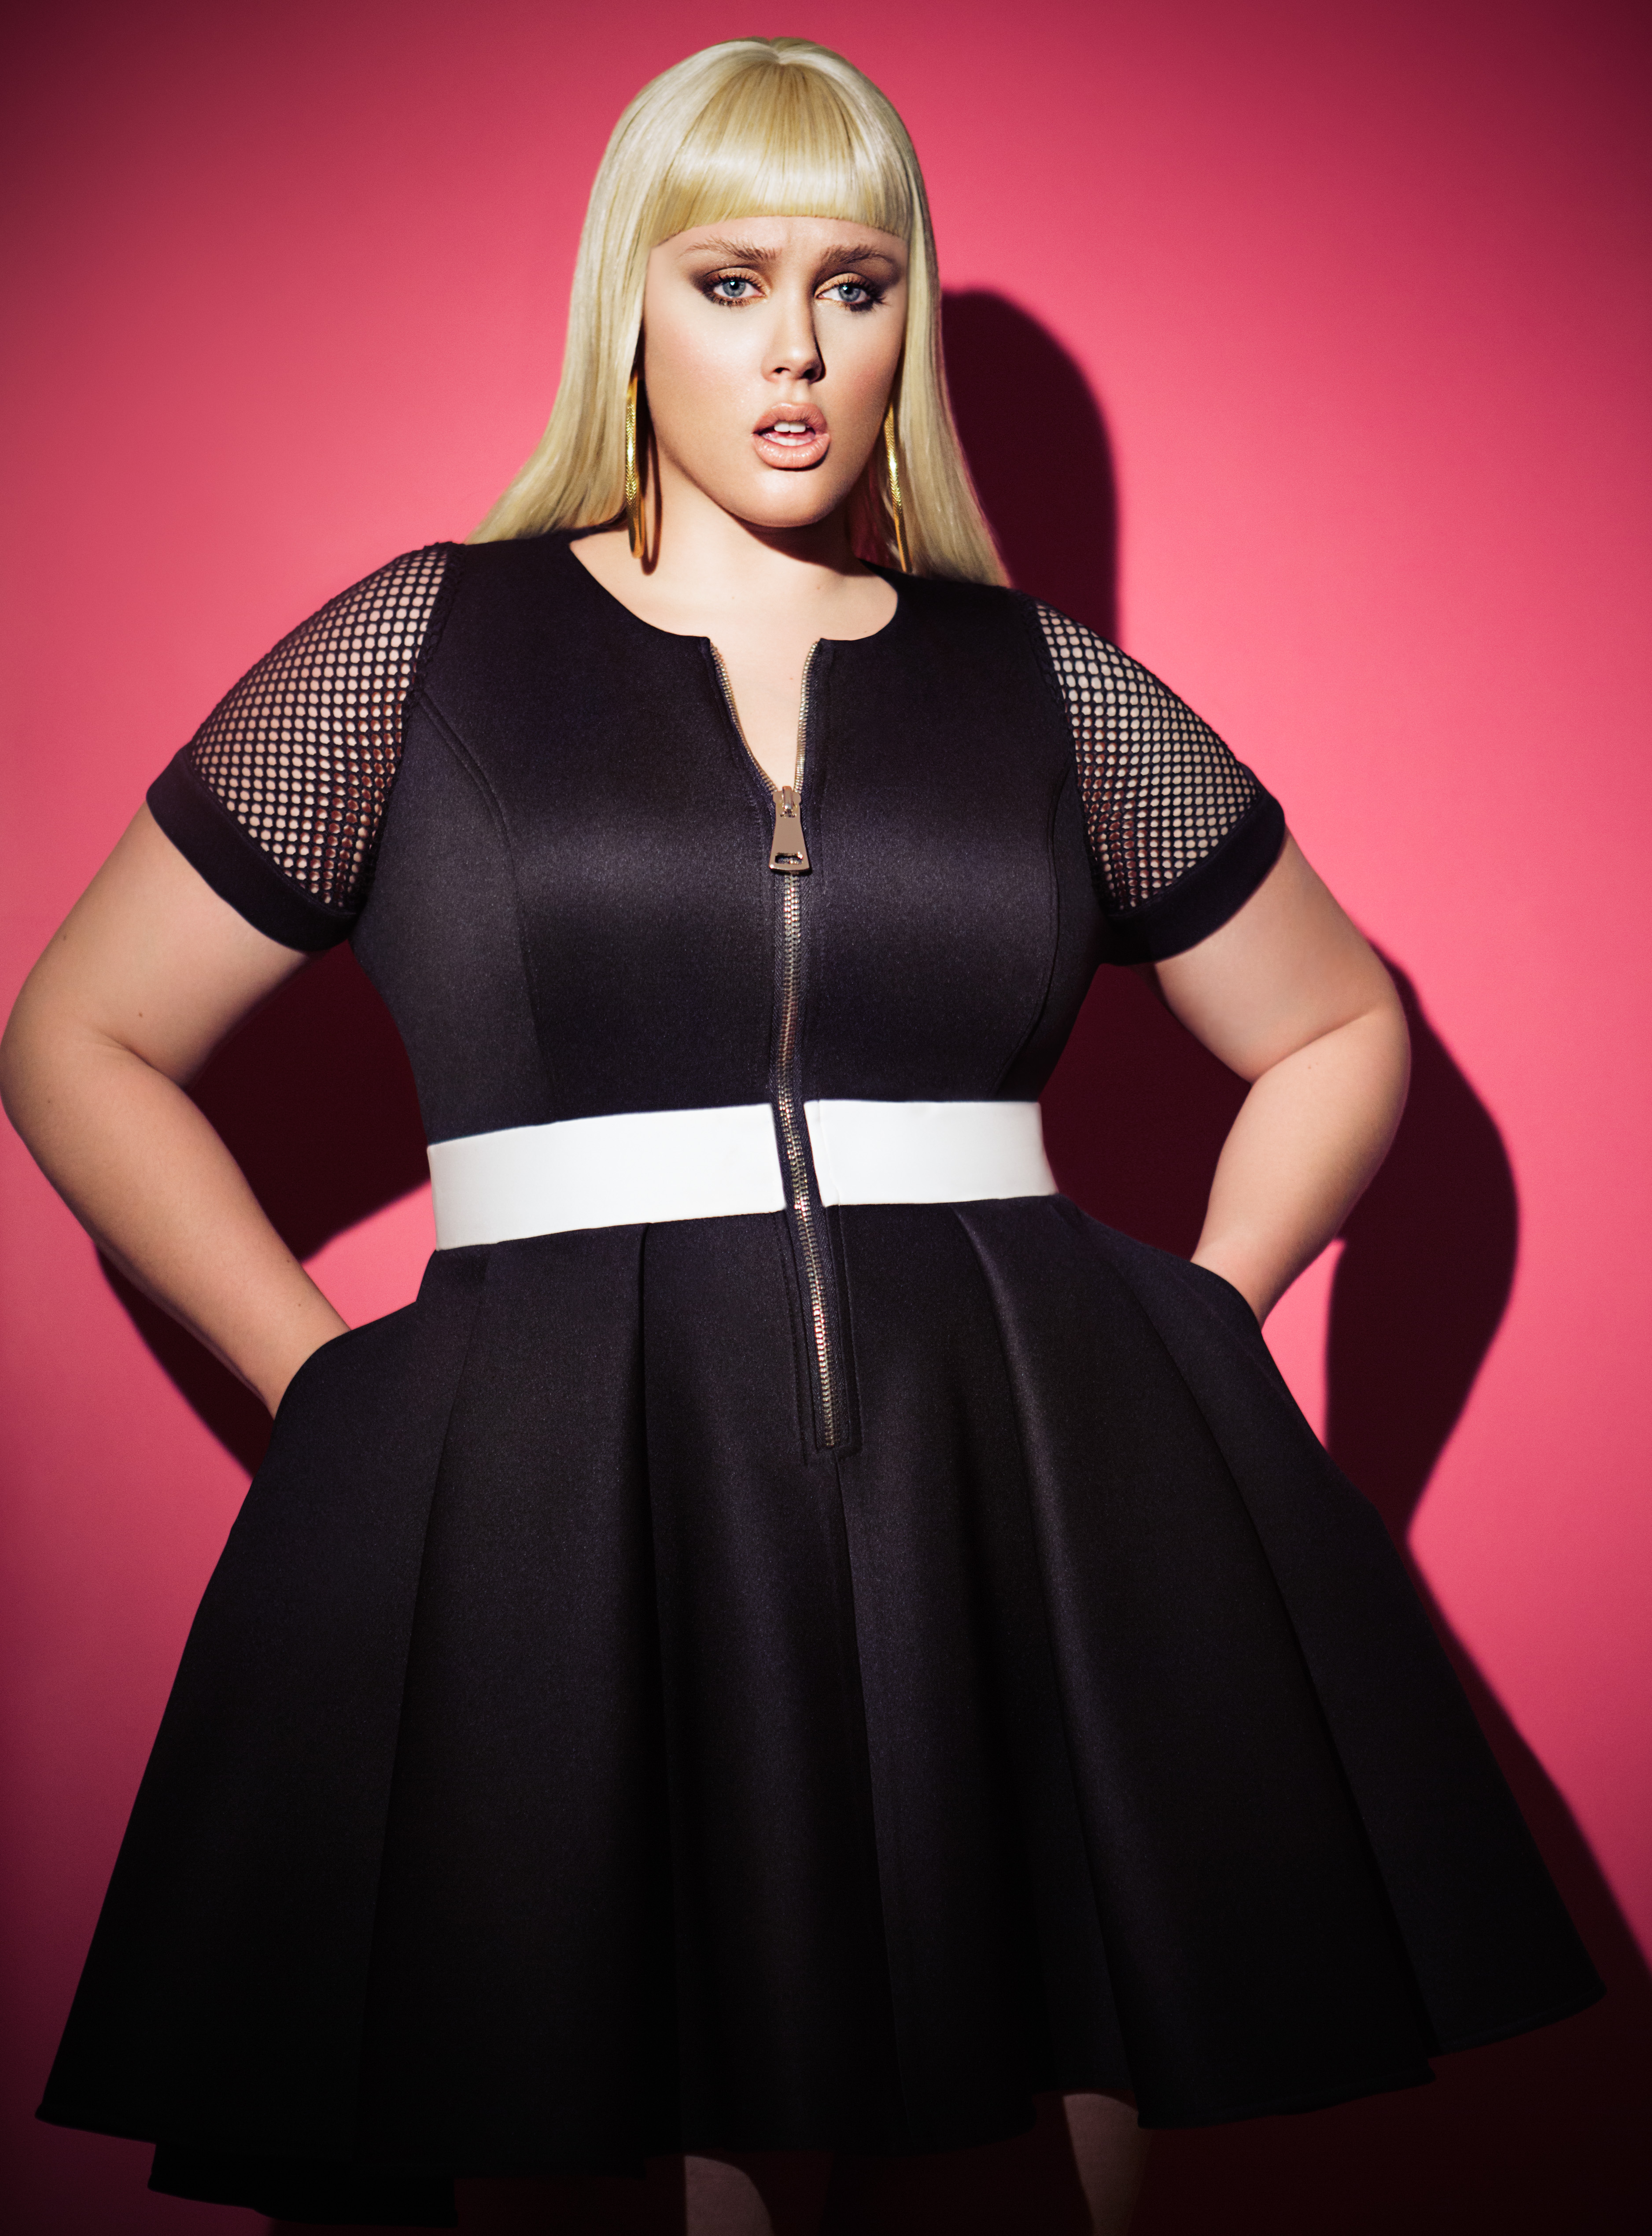 13 plus size neoprene fashions to rock this spring — because